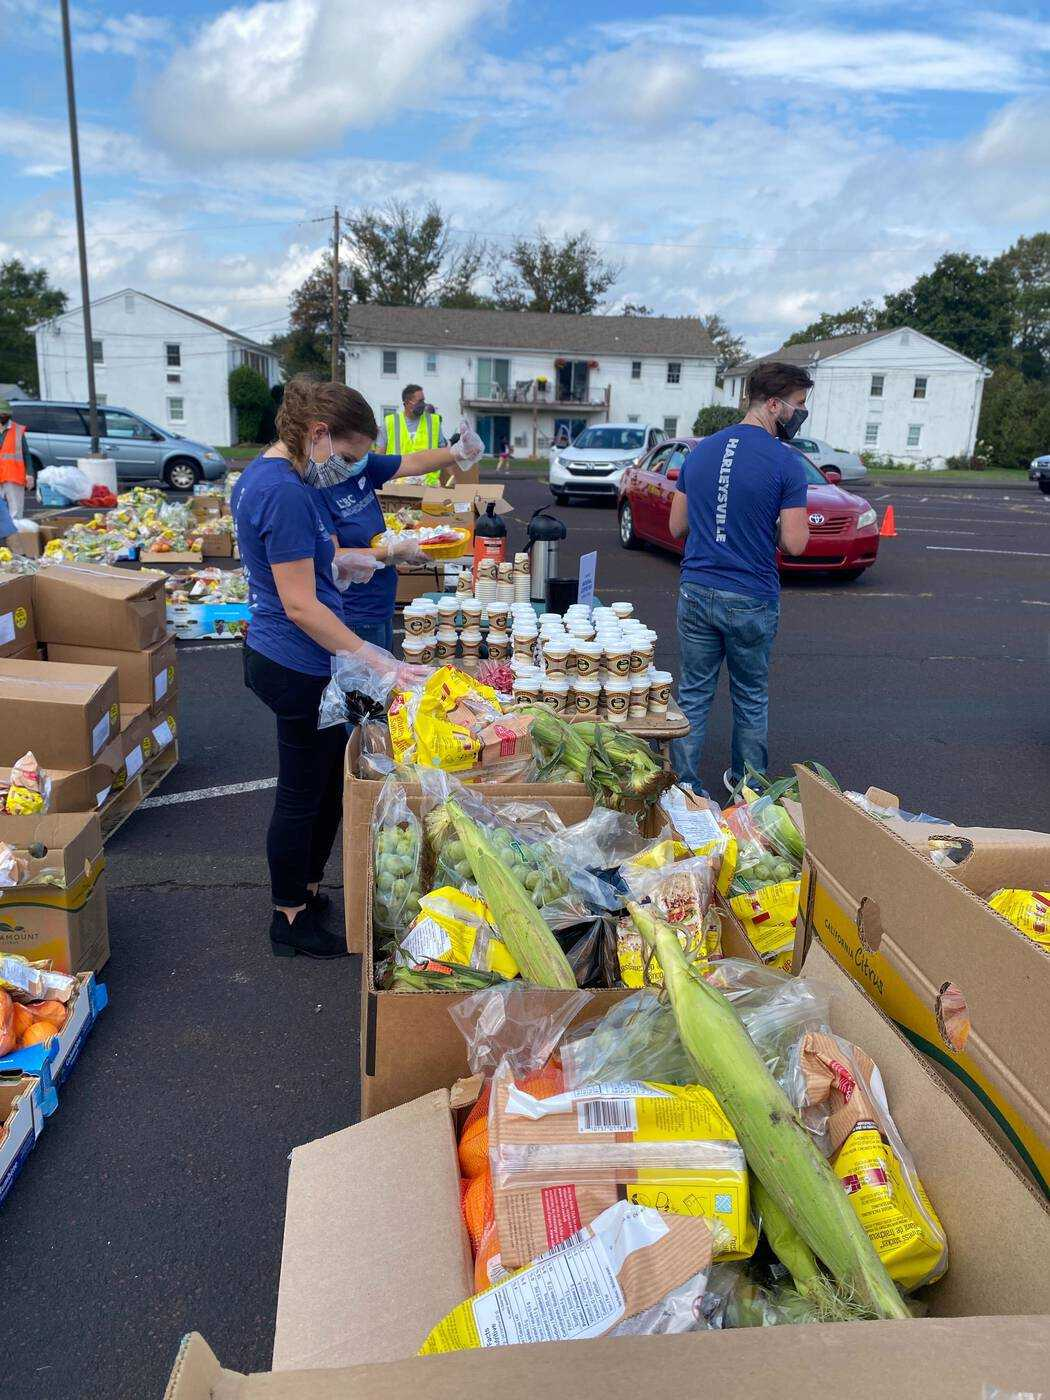 LCBC BranchCreek (Harleysville) and Be Rich partner Keystone Opportunity Center distributing food and coffee to the community